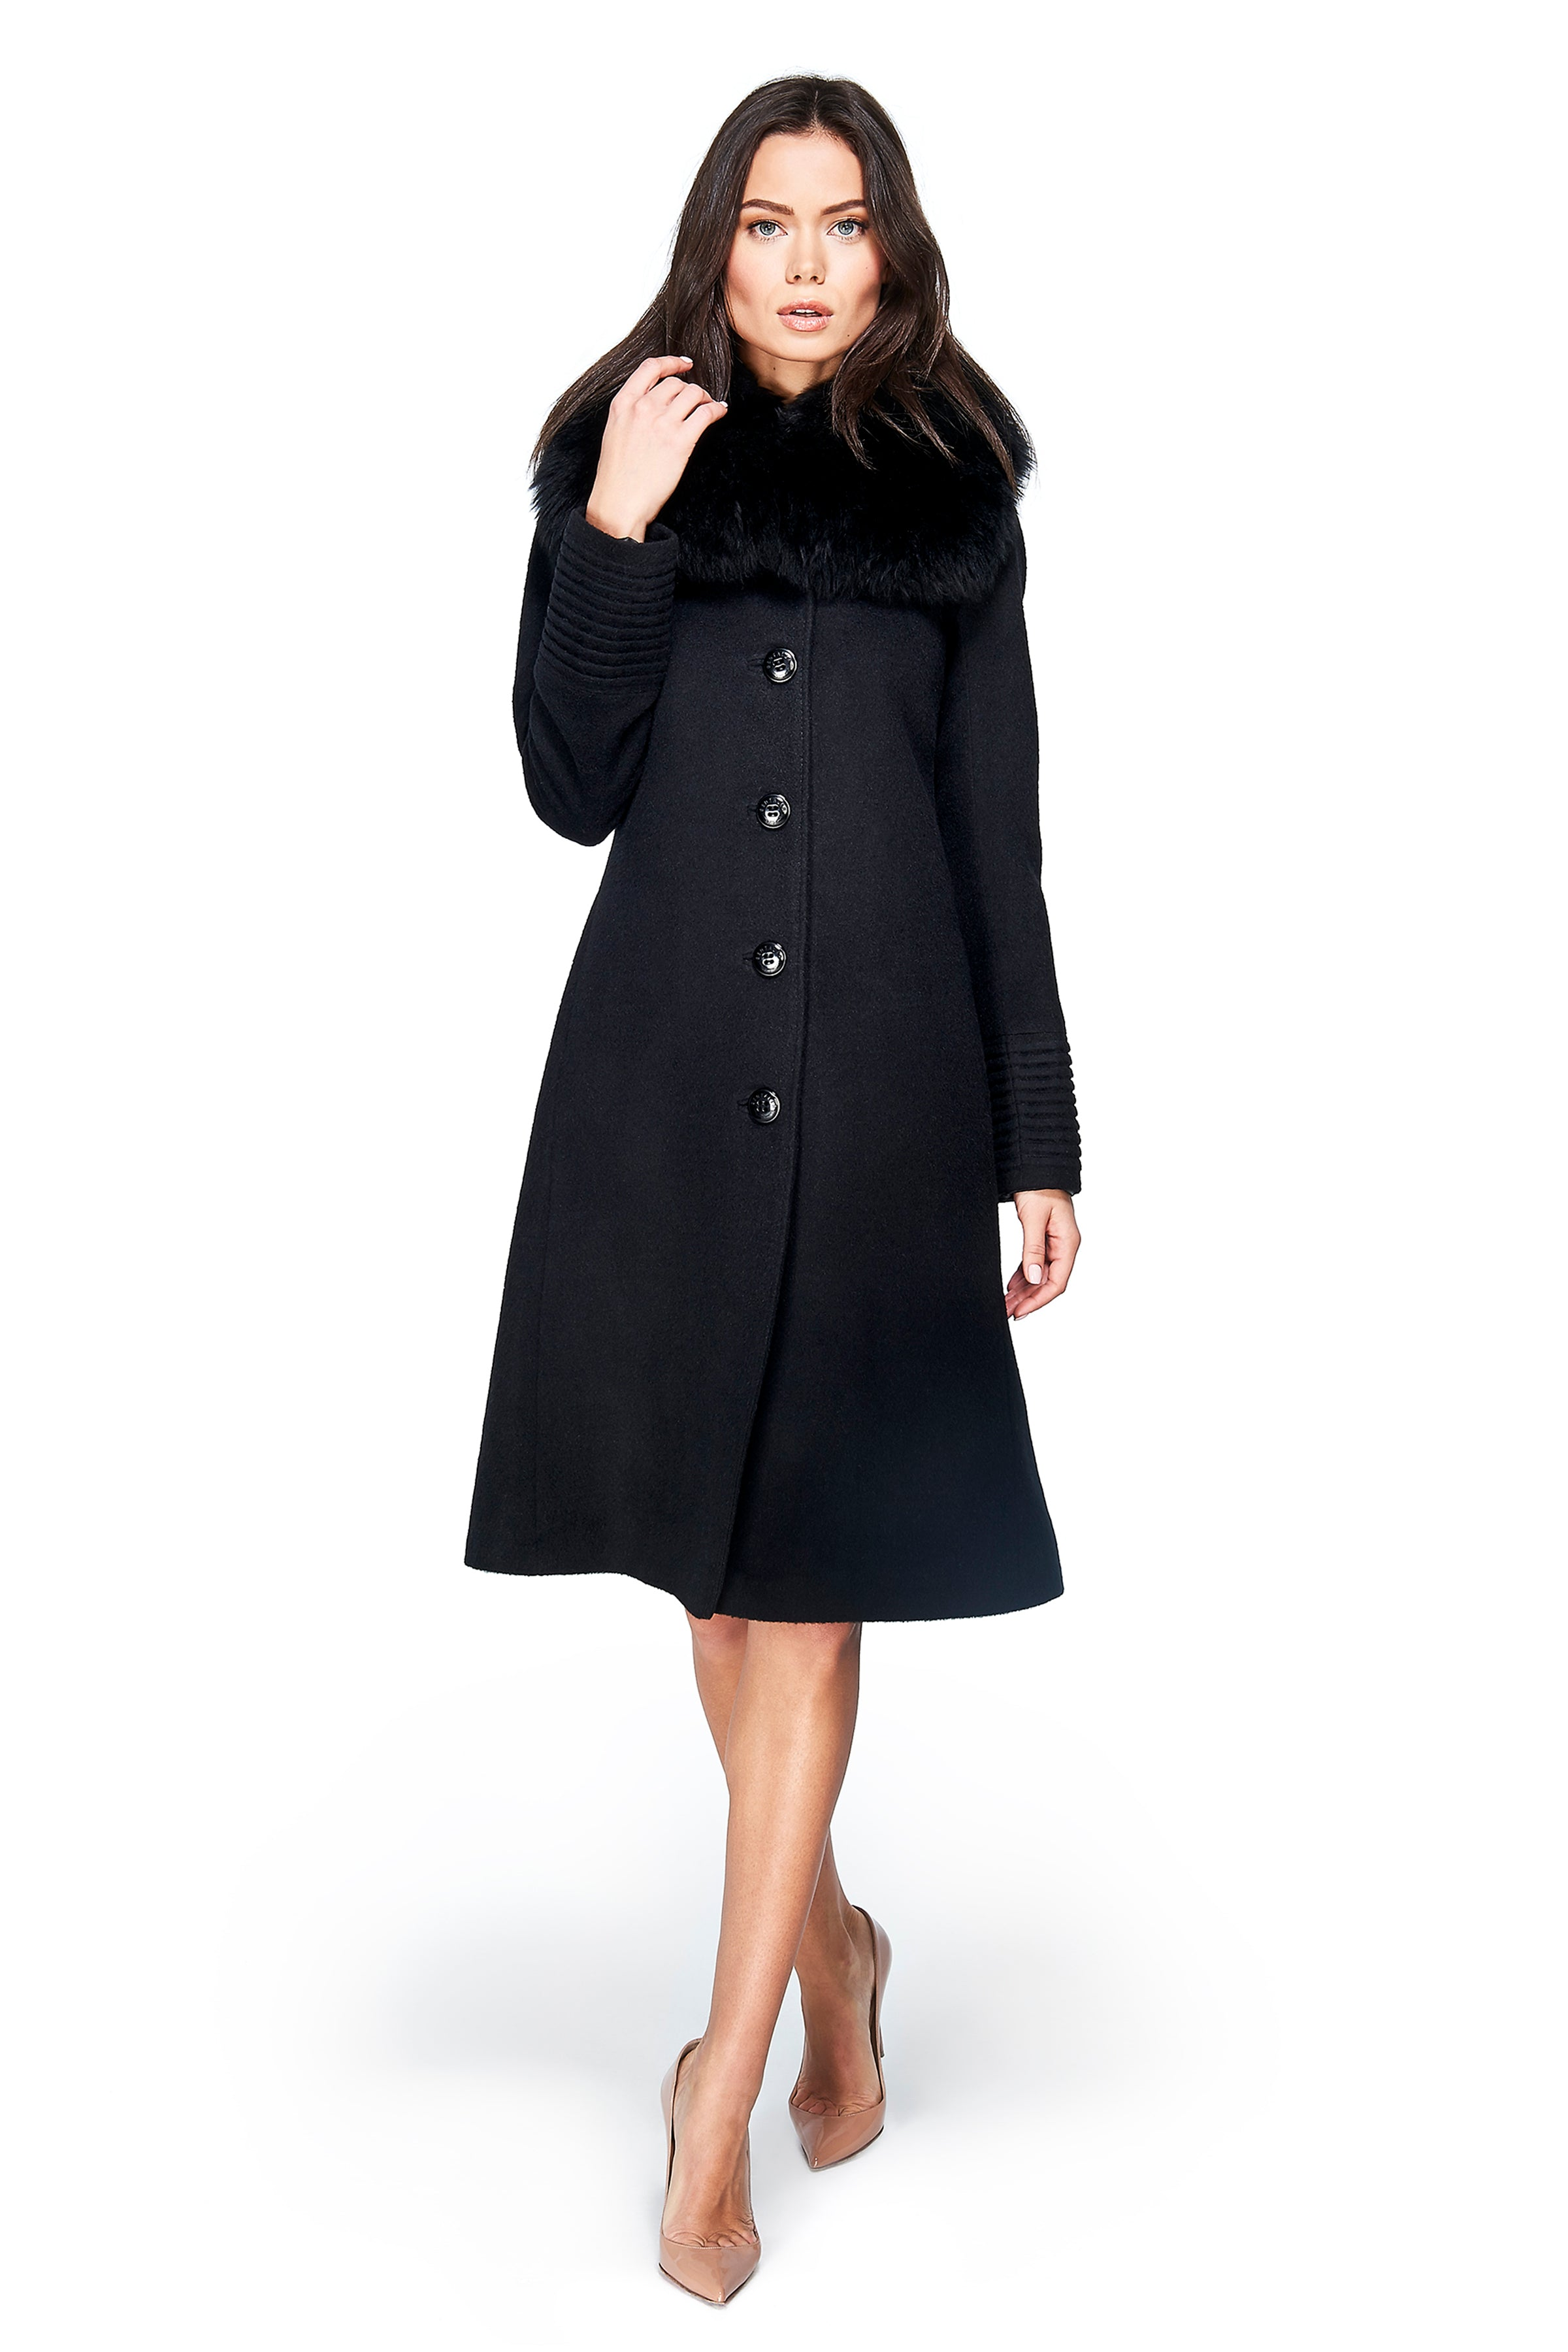 Fitted Coat with Buttons and Fur Collar Black